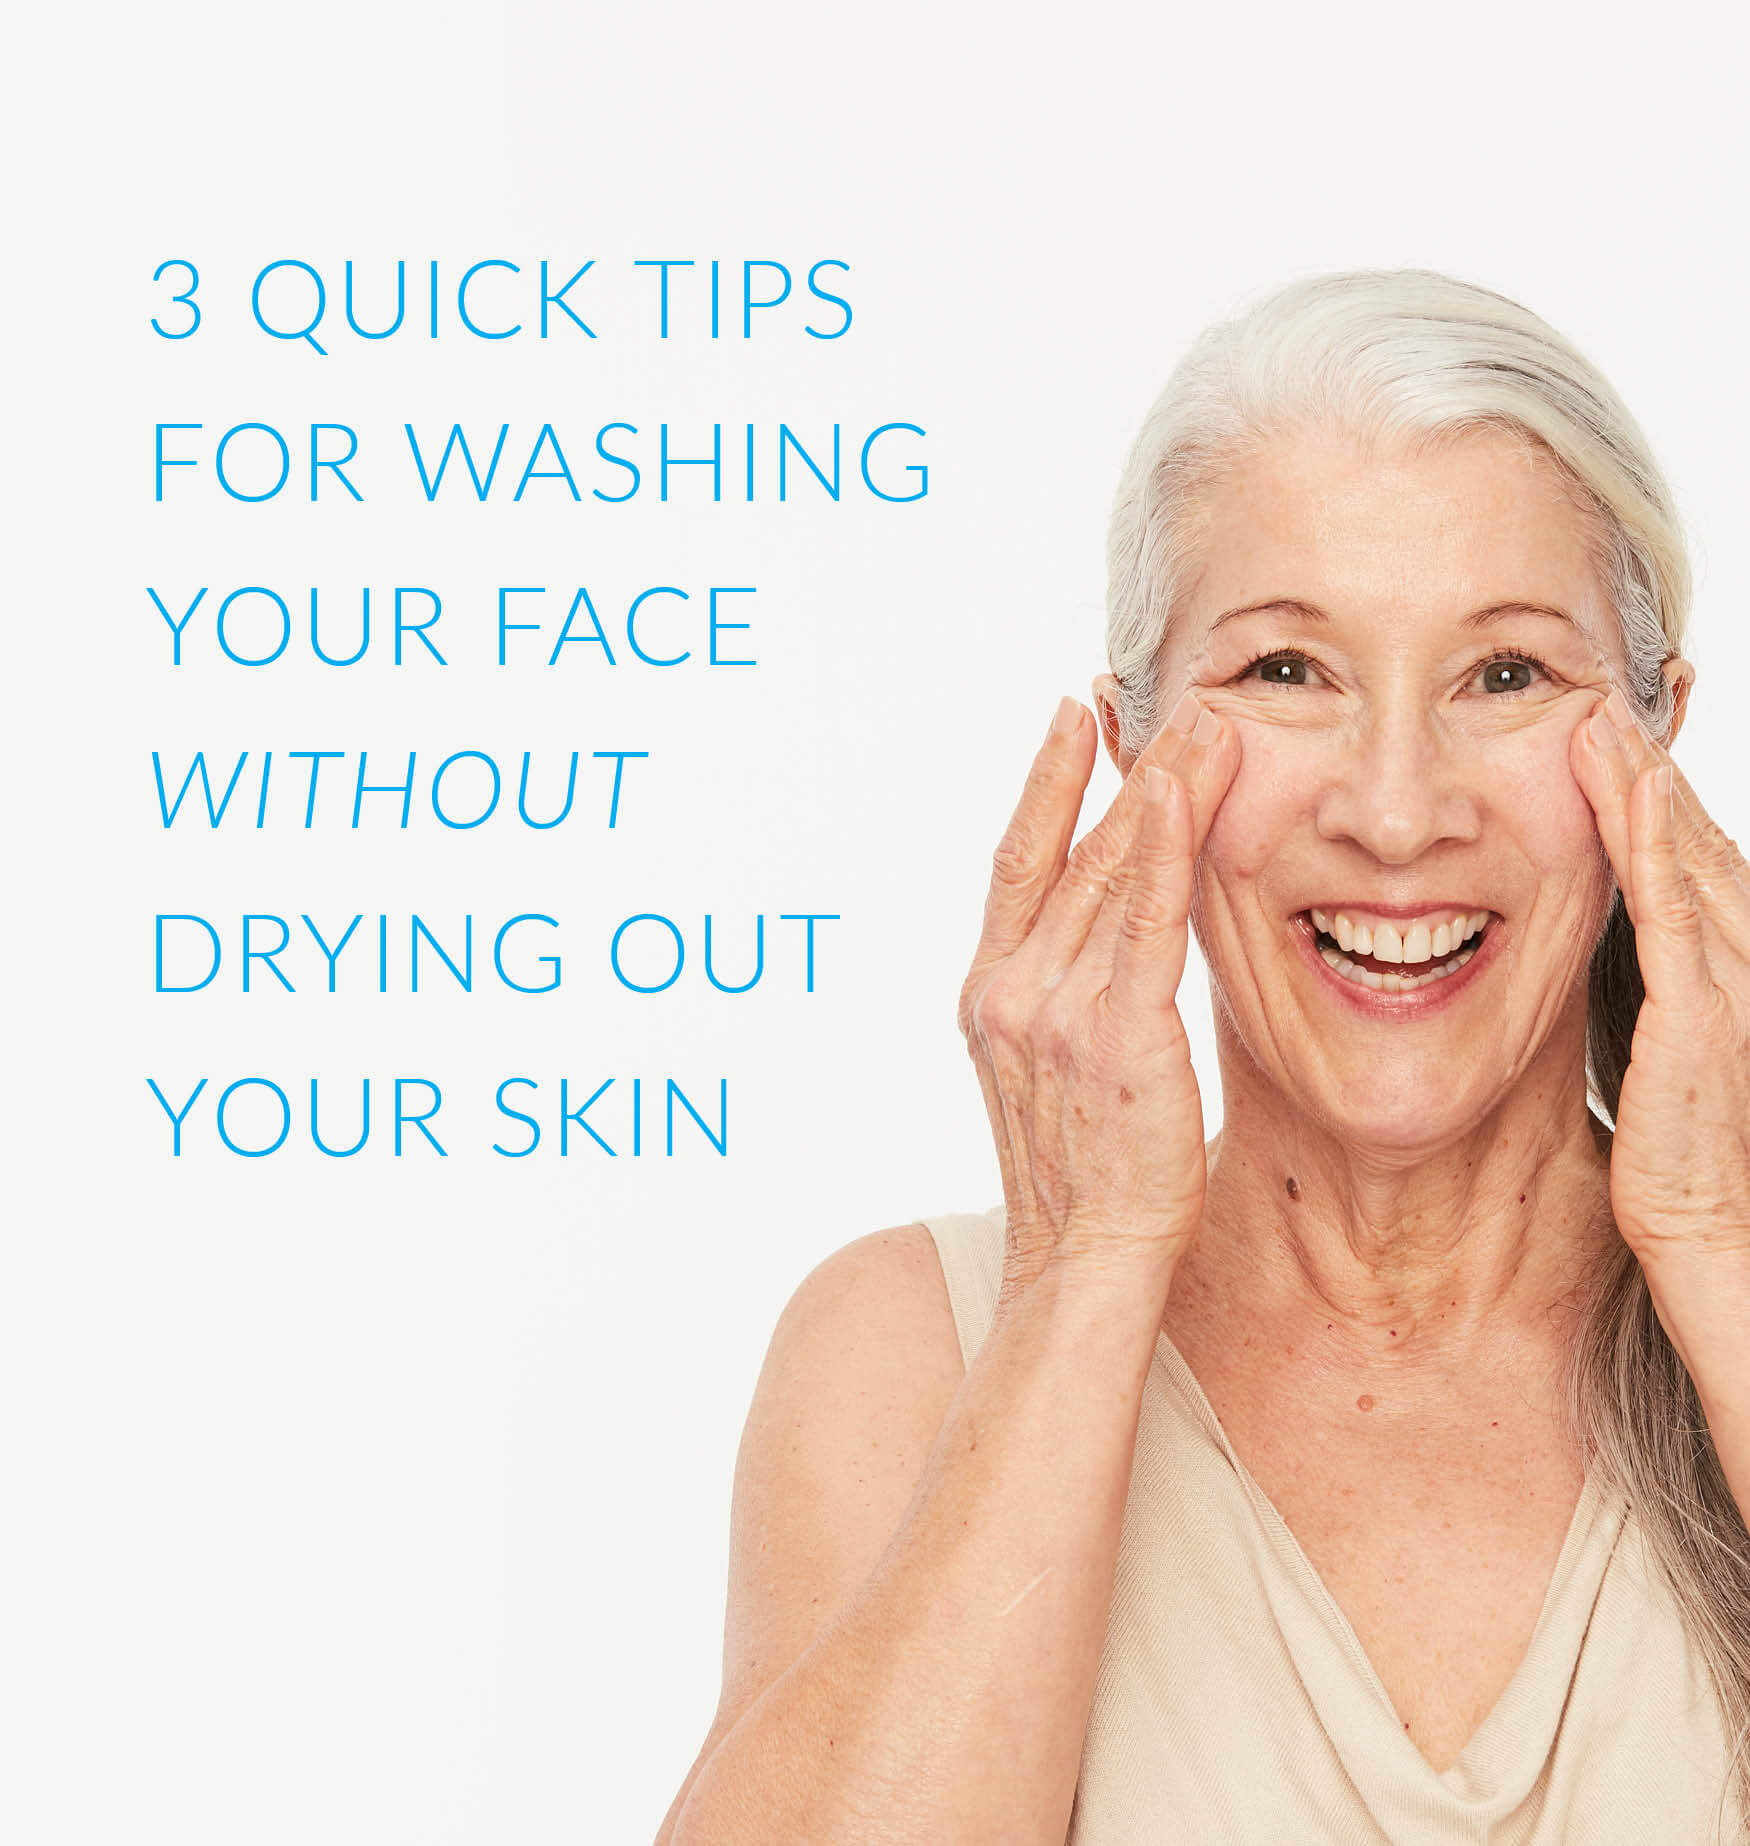 9 Tips to Wash Your Face Without Drying it Out